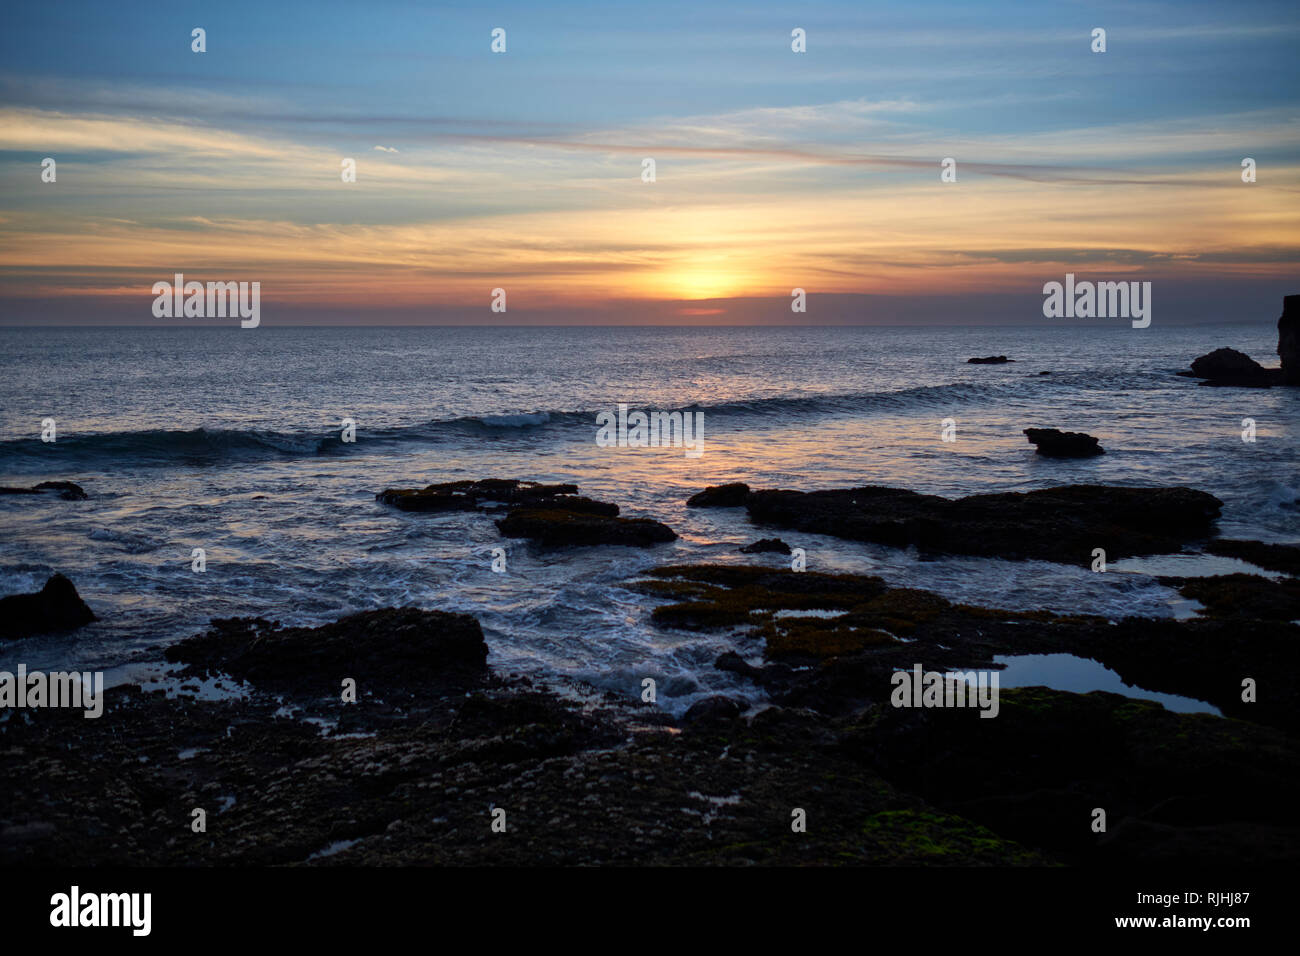 Sunset over ocean at Tanah Lot, Bali, Indonesia - Stock Image